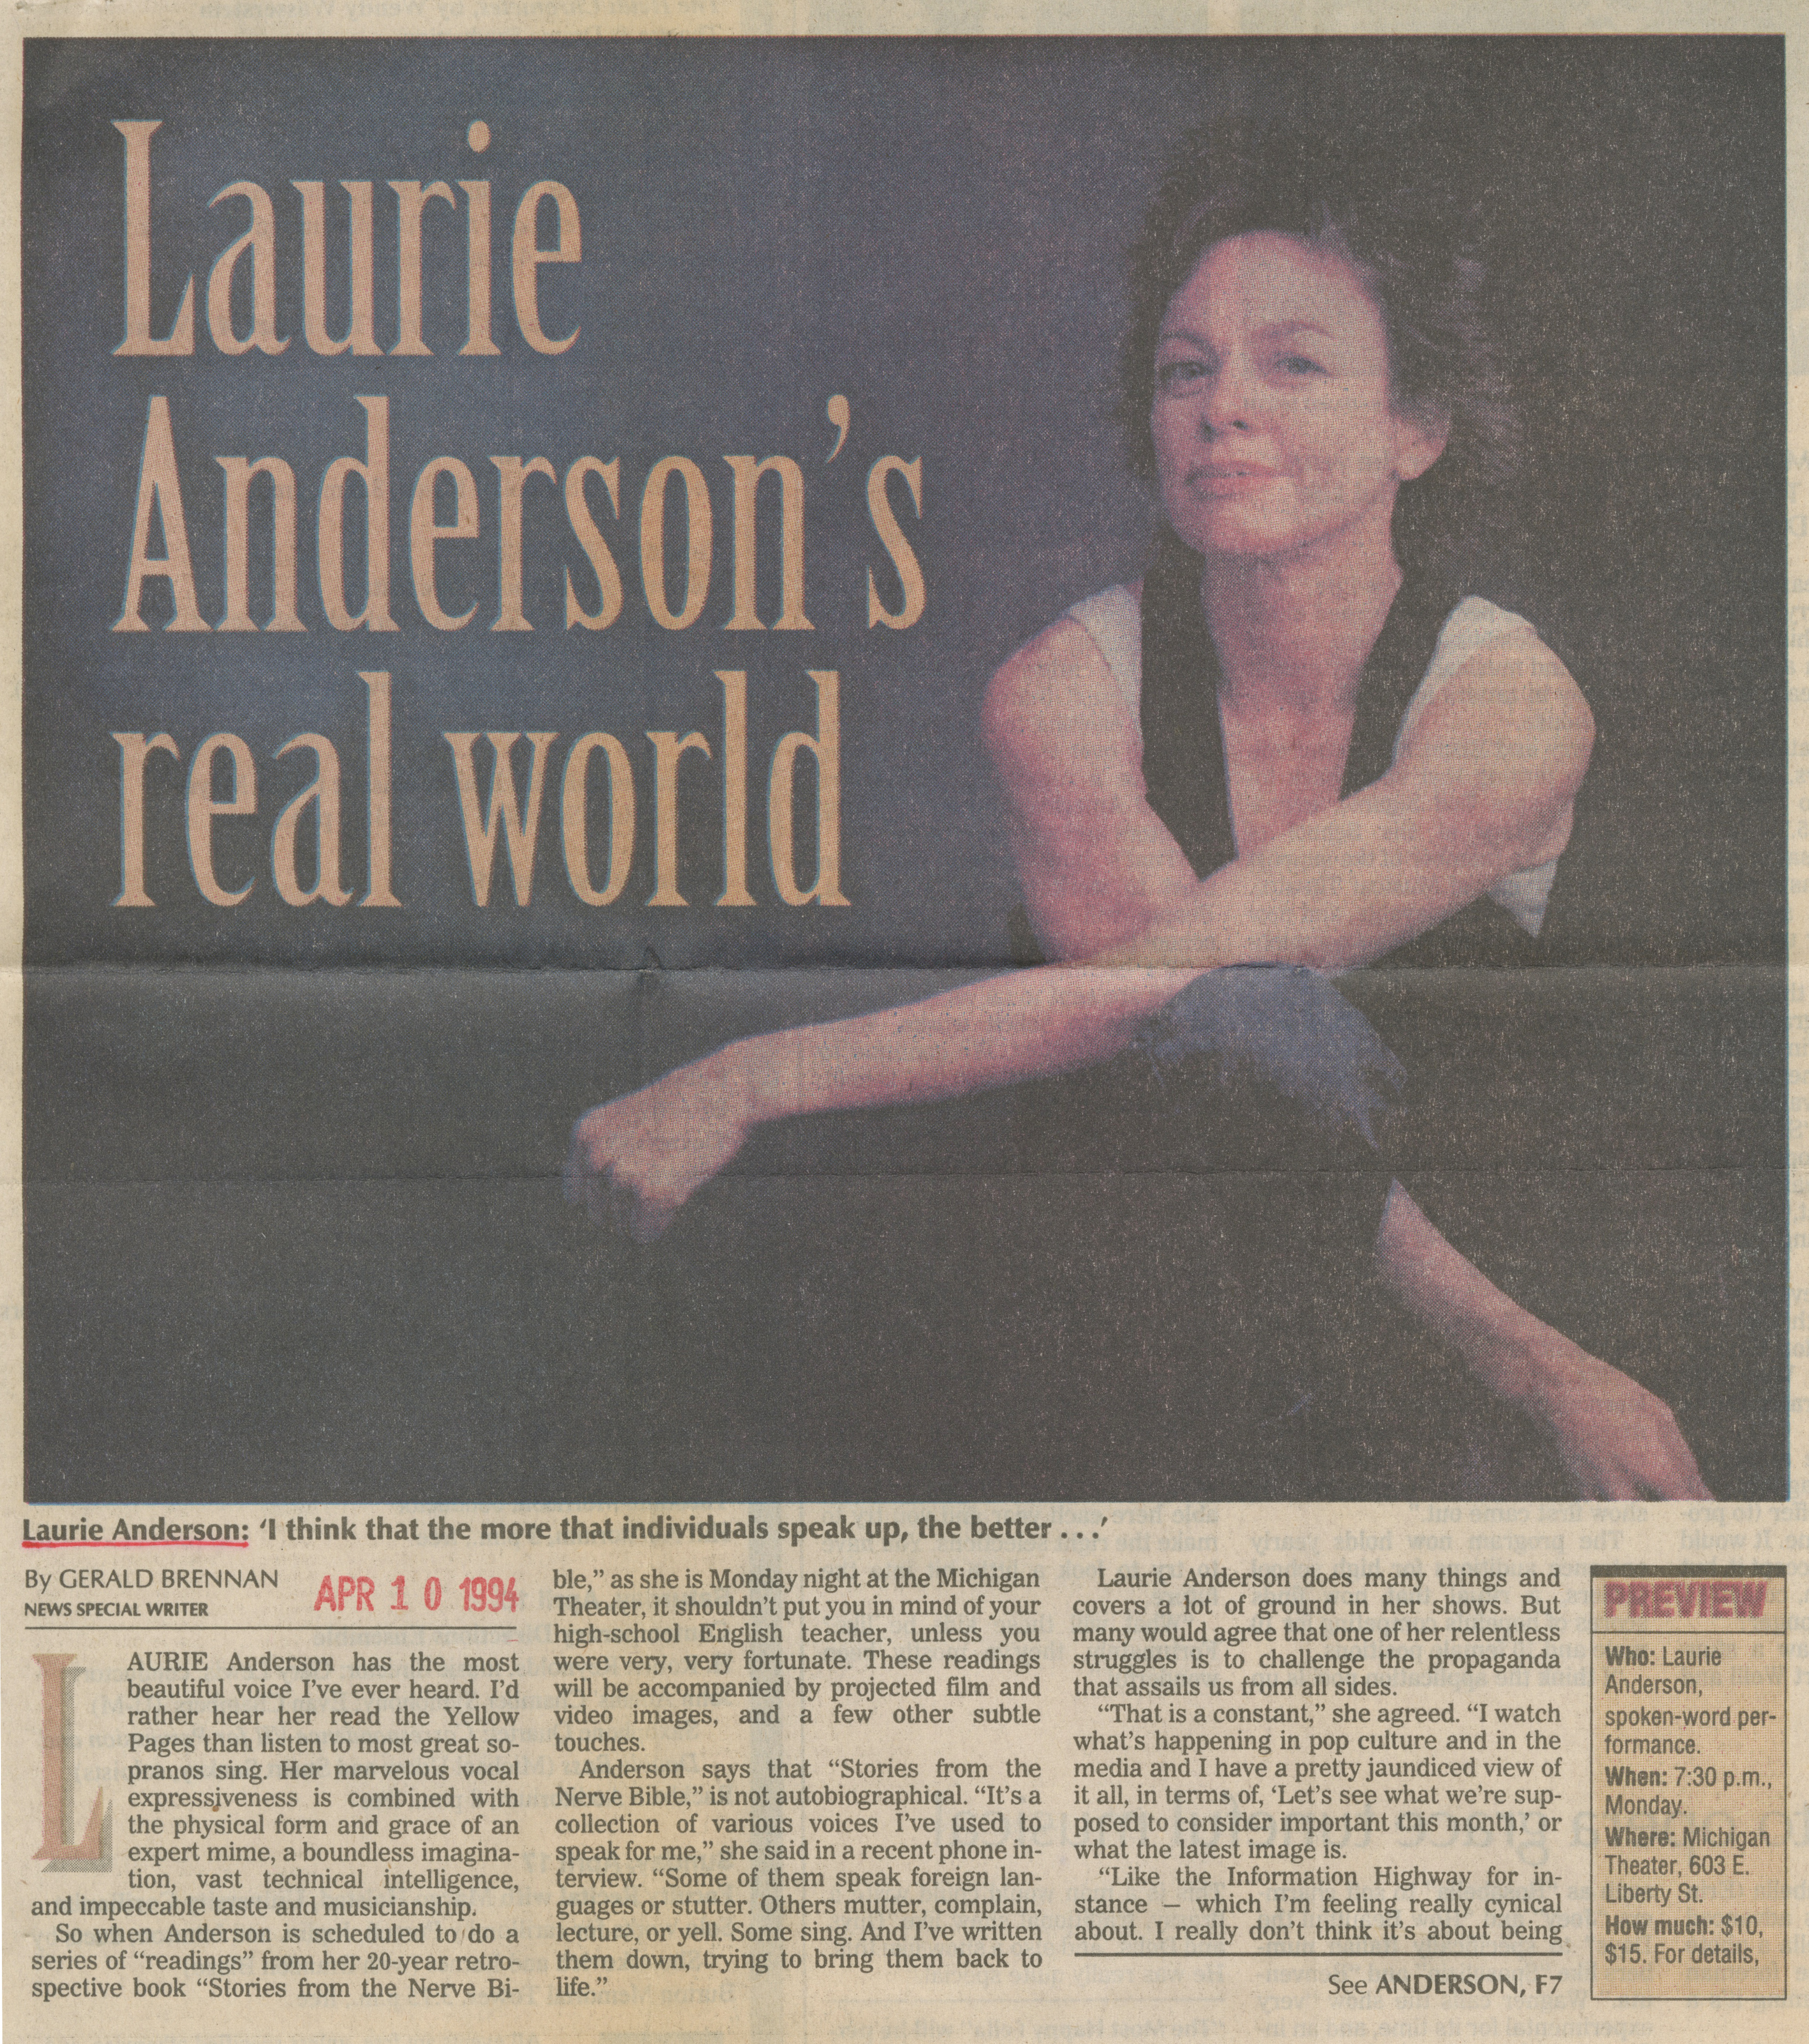 Laurie Anderson's real world image